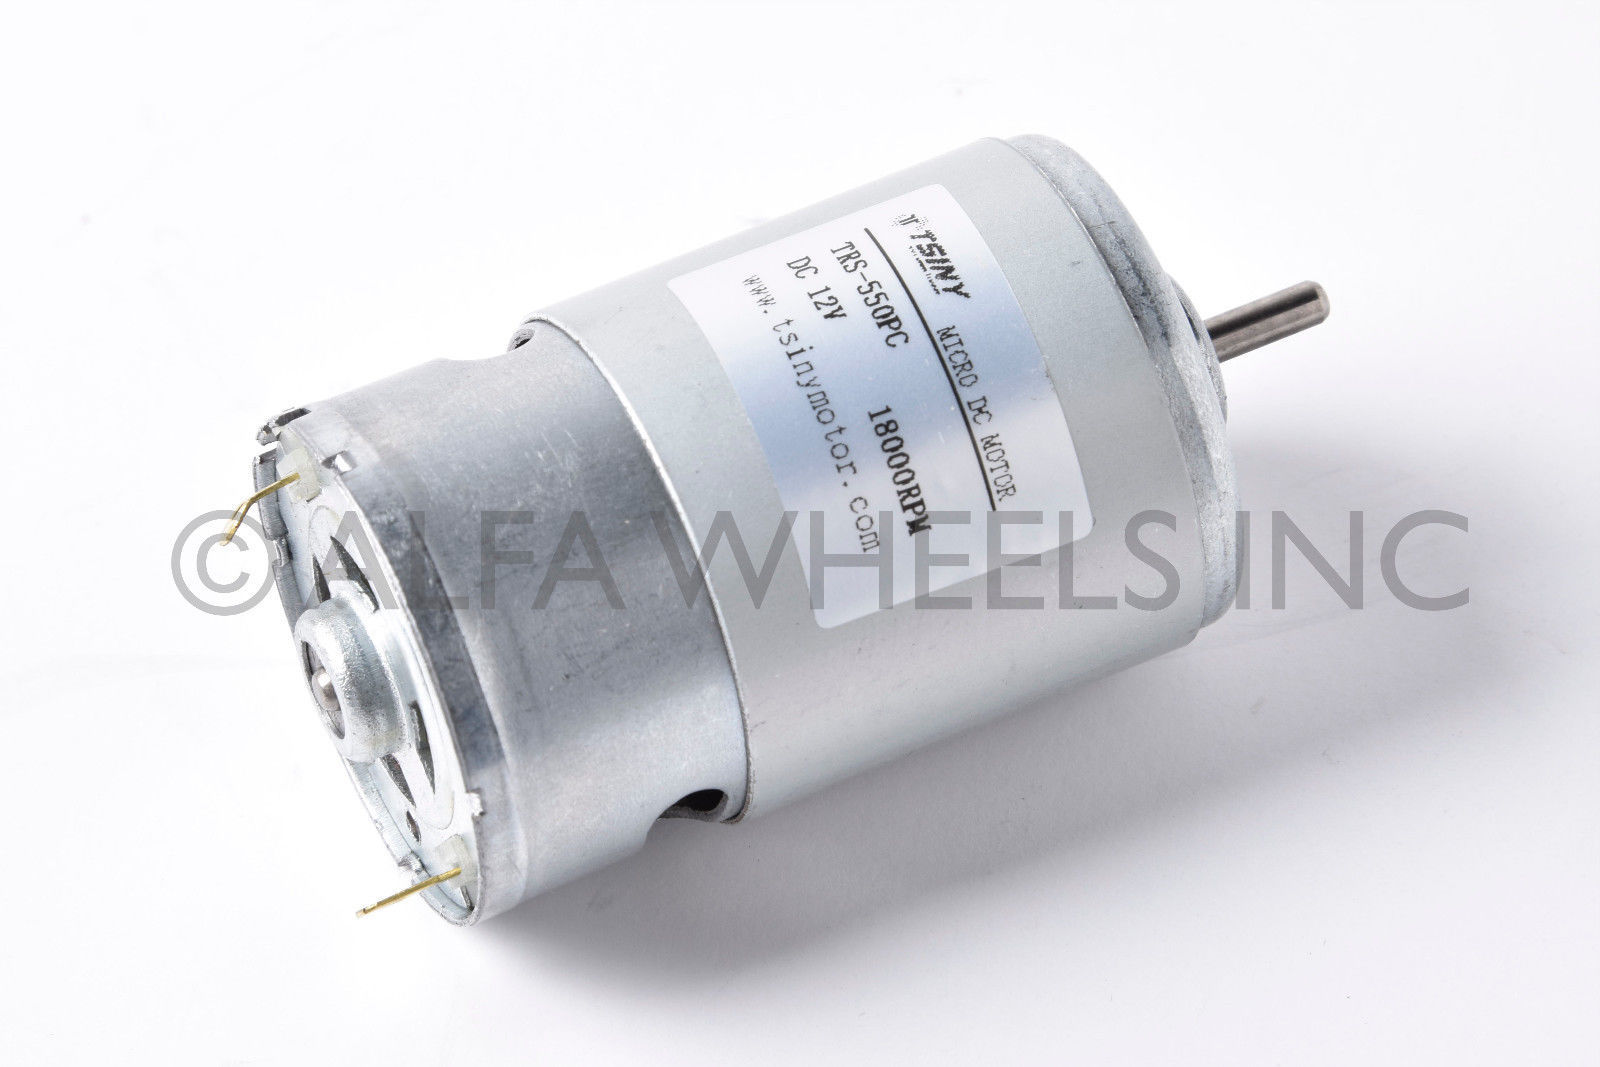 Electric pmdc 12 v dc 120 w motor 19000 rpm high speed for 120 volt ac motor